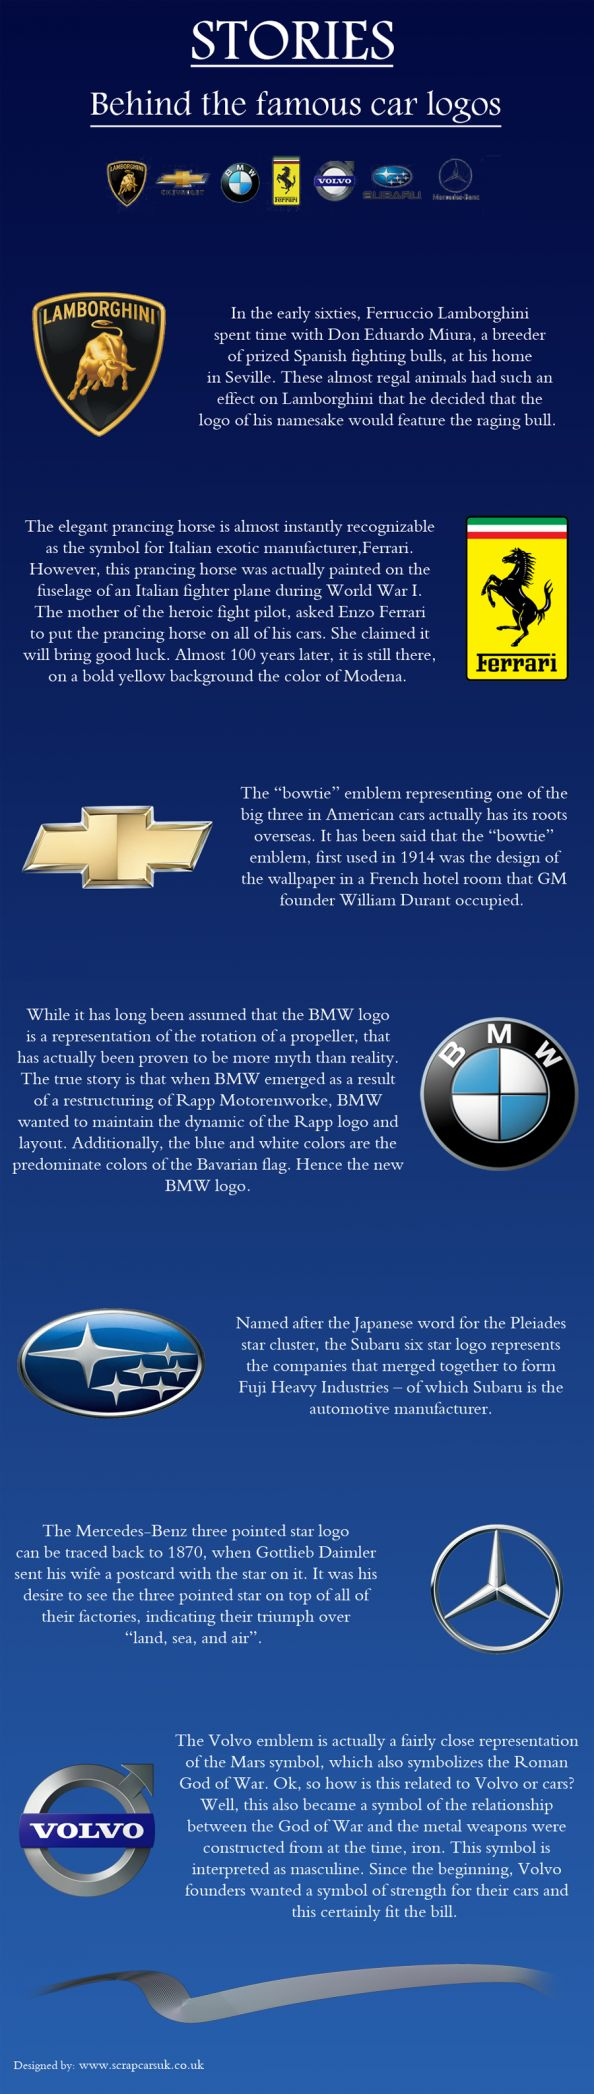 Stories behind the famous car logos  ☆ Pinned by www.Rallycross360...